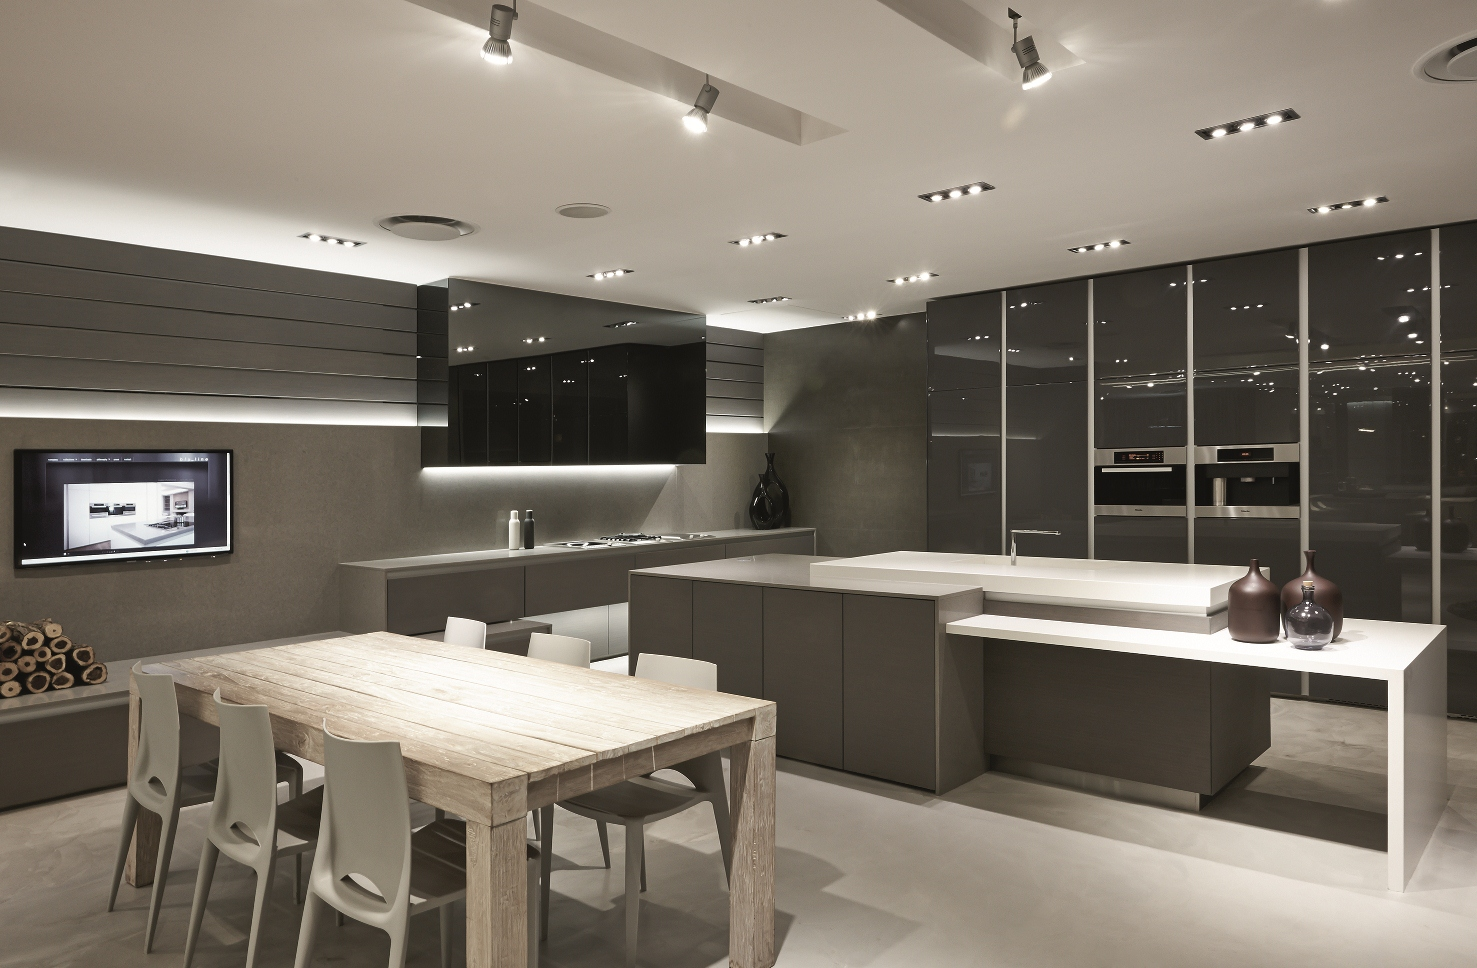 Blu_line Recently Opened Their New Kitchen Showroom In Design Quarter,  Johannesburg, Earlier This Year. The New Showroom Boasts Over 300 Square  Meters Of ...